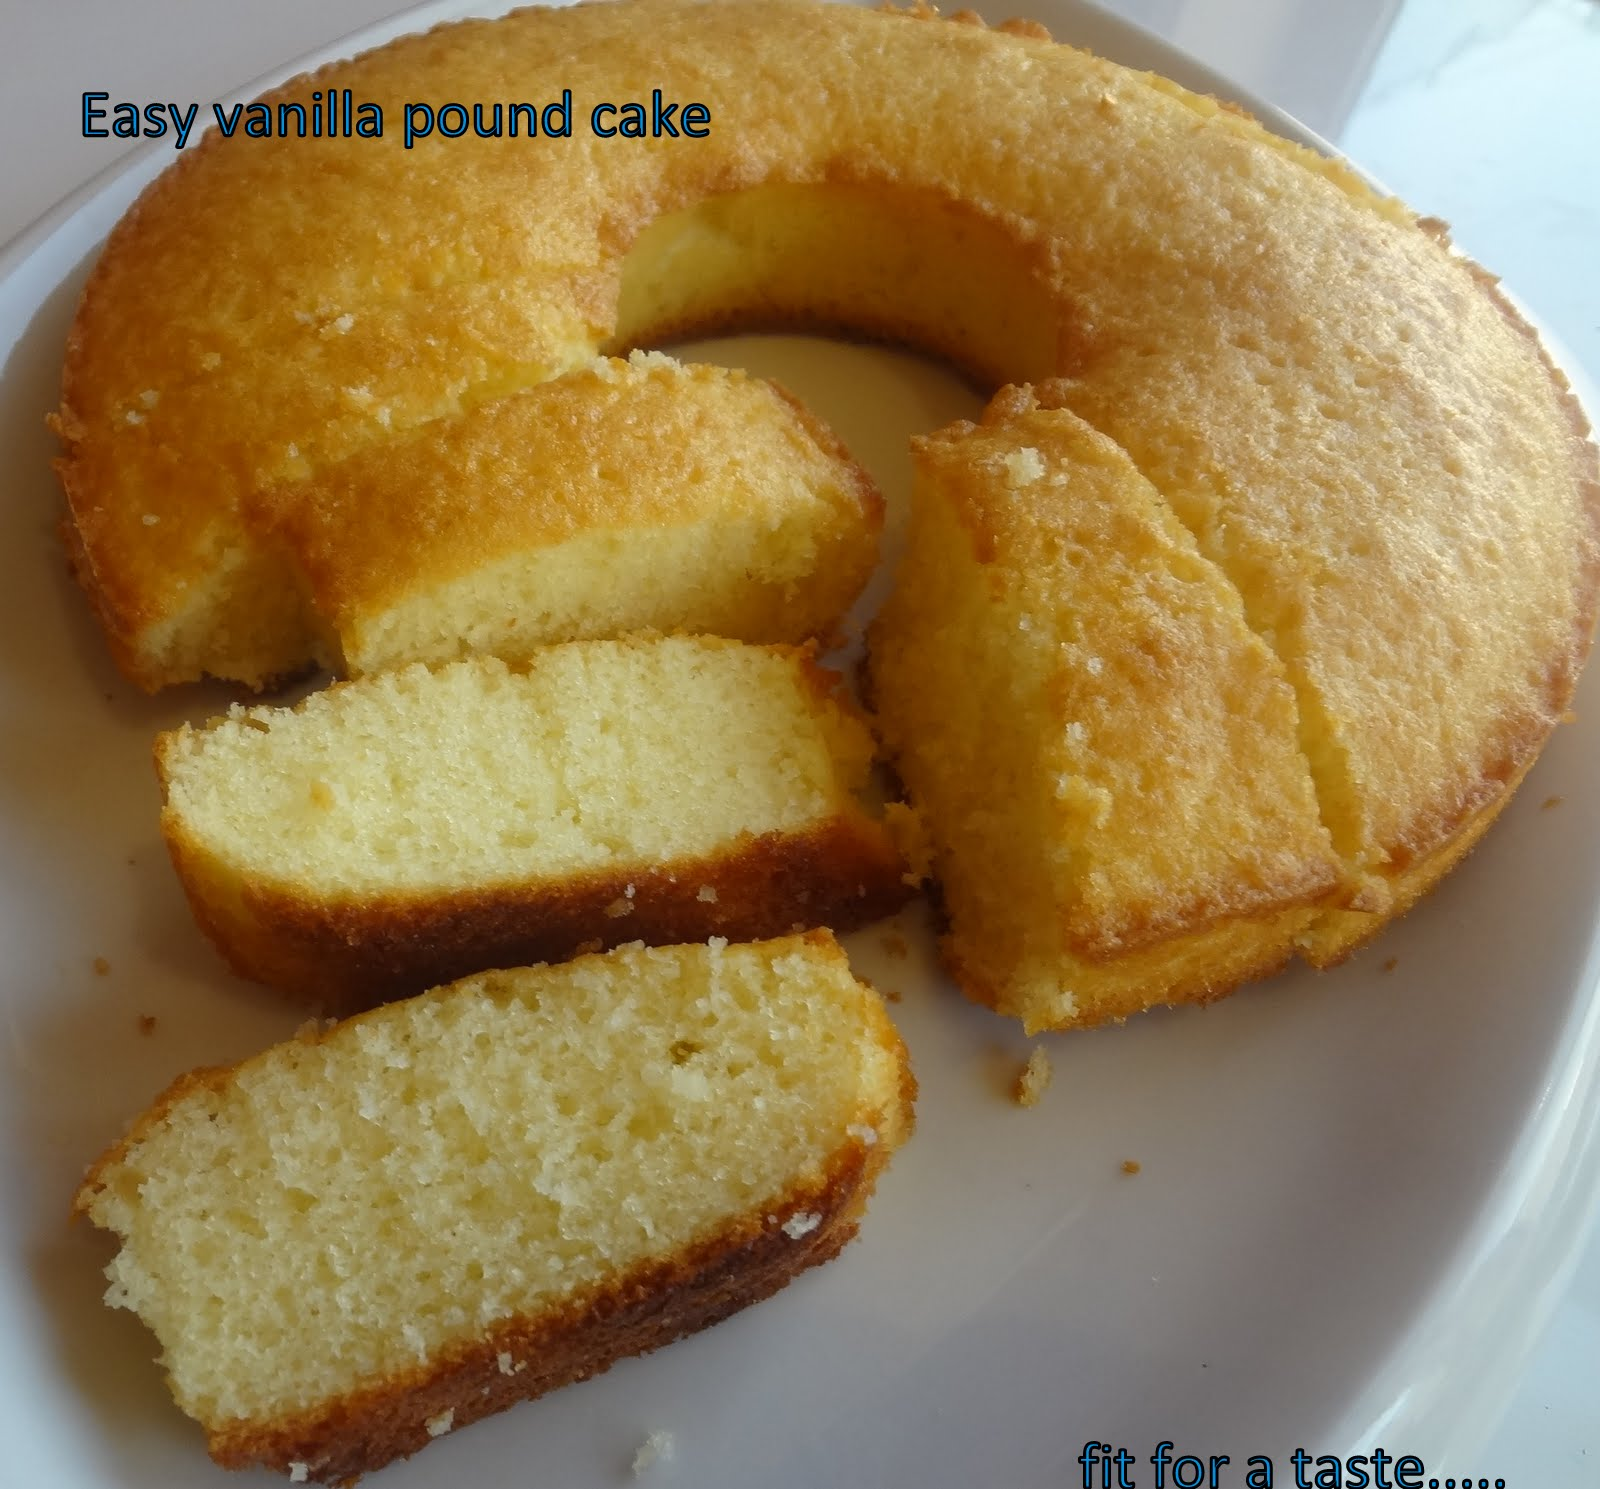 Fit for a taste: EASY VANILLA POUND CAKE